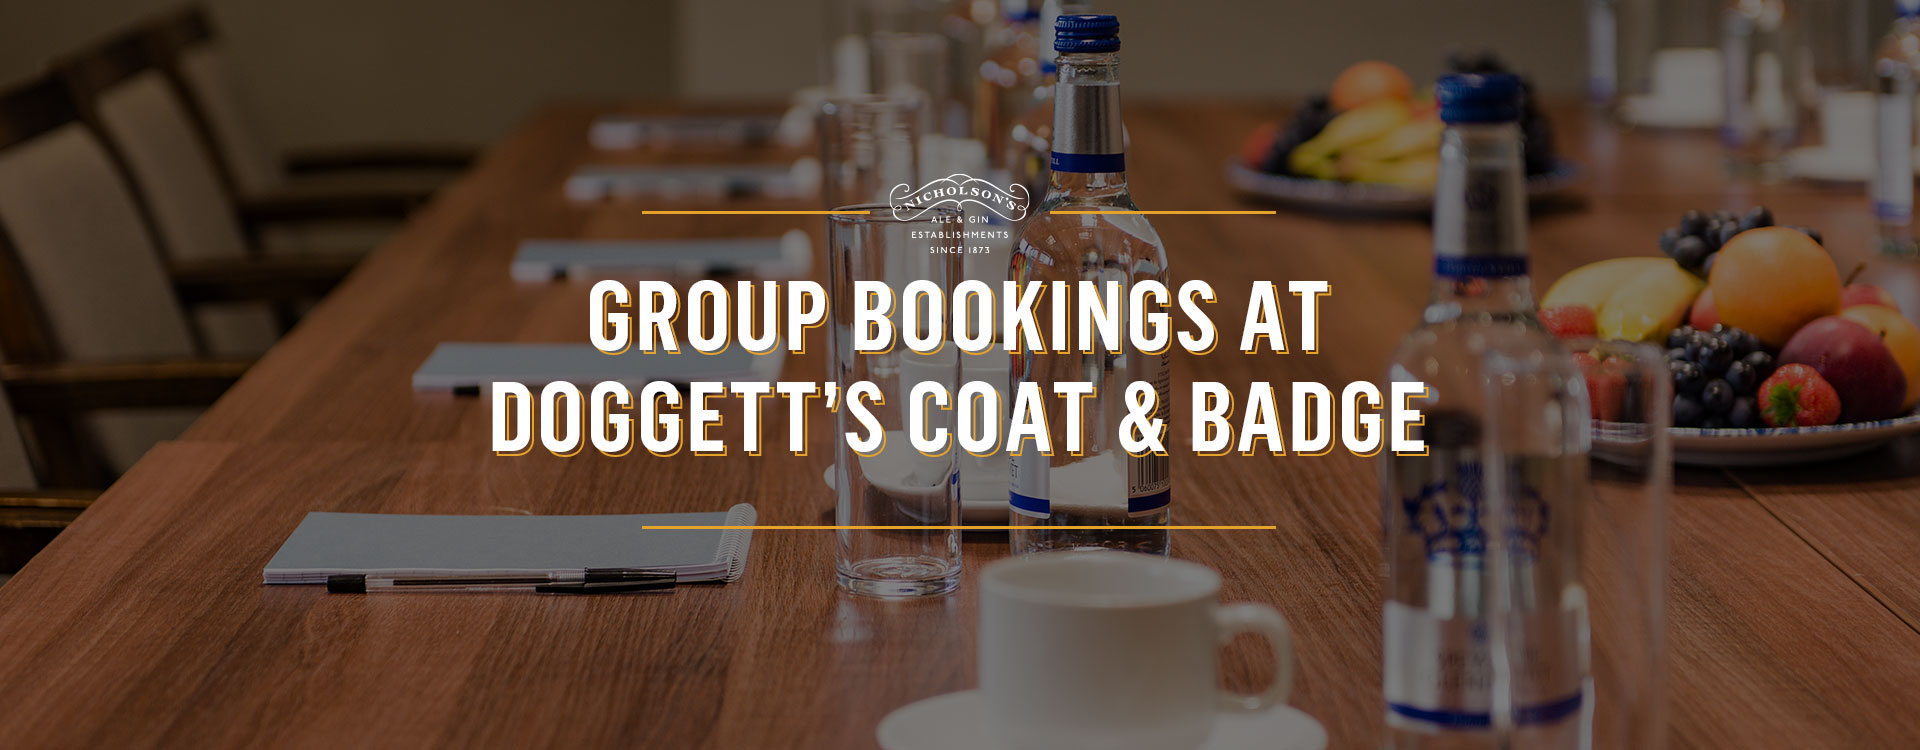 Group Bookings at Doggett's Coat and Badge